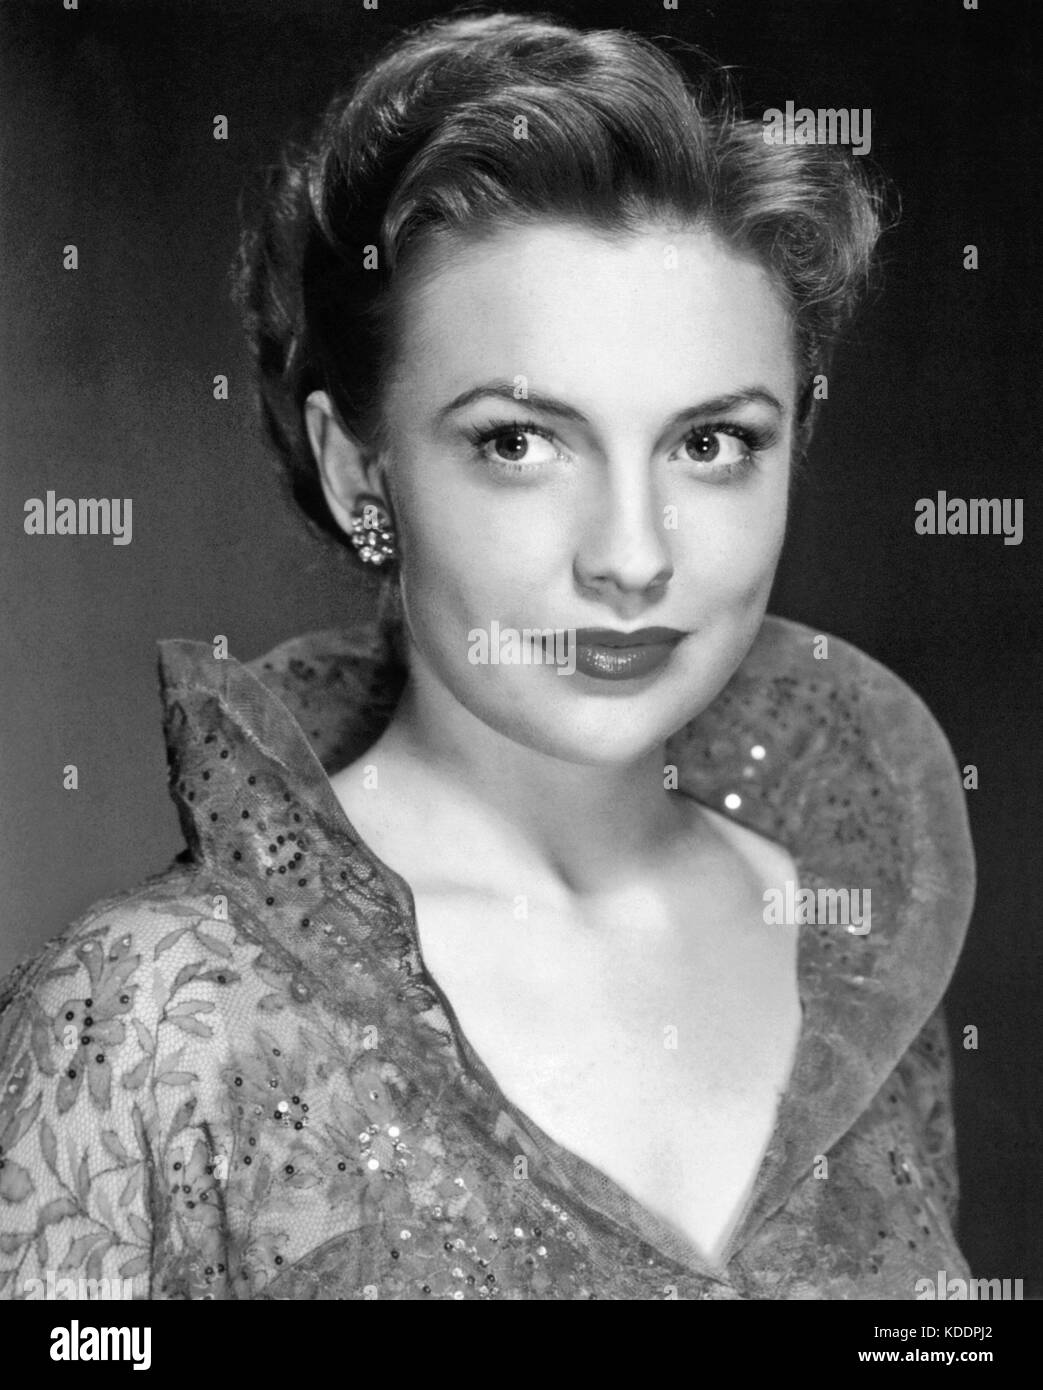 JOAN LESLIE (1925-2015) American film actress and dancer about 1955 - Stock Image